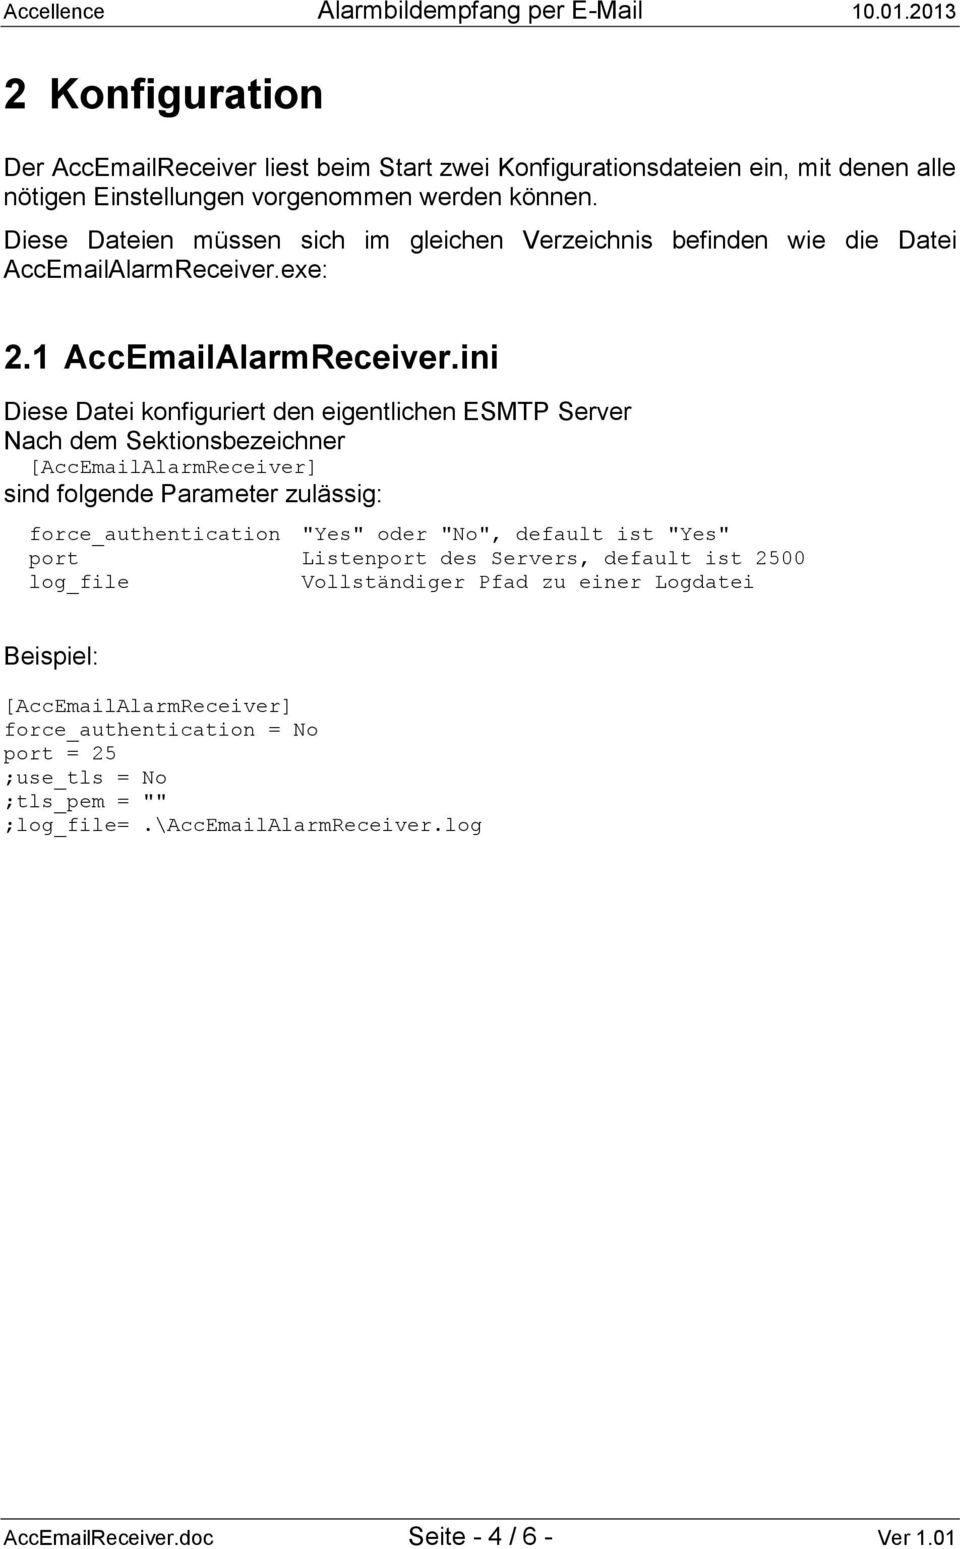 "ini Diese Datei konfiguriert den eigentlichen ESMTP Server Nach dem Sektionsbezeichner [AccEmailAlarmReceiver] sind folgende Parameter zulässig: force_authentication ""Yes"" oder ""No"","